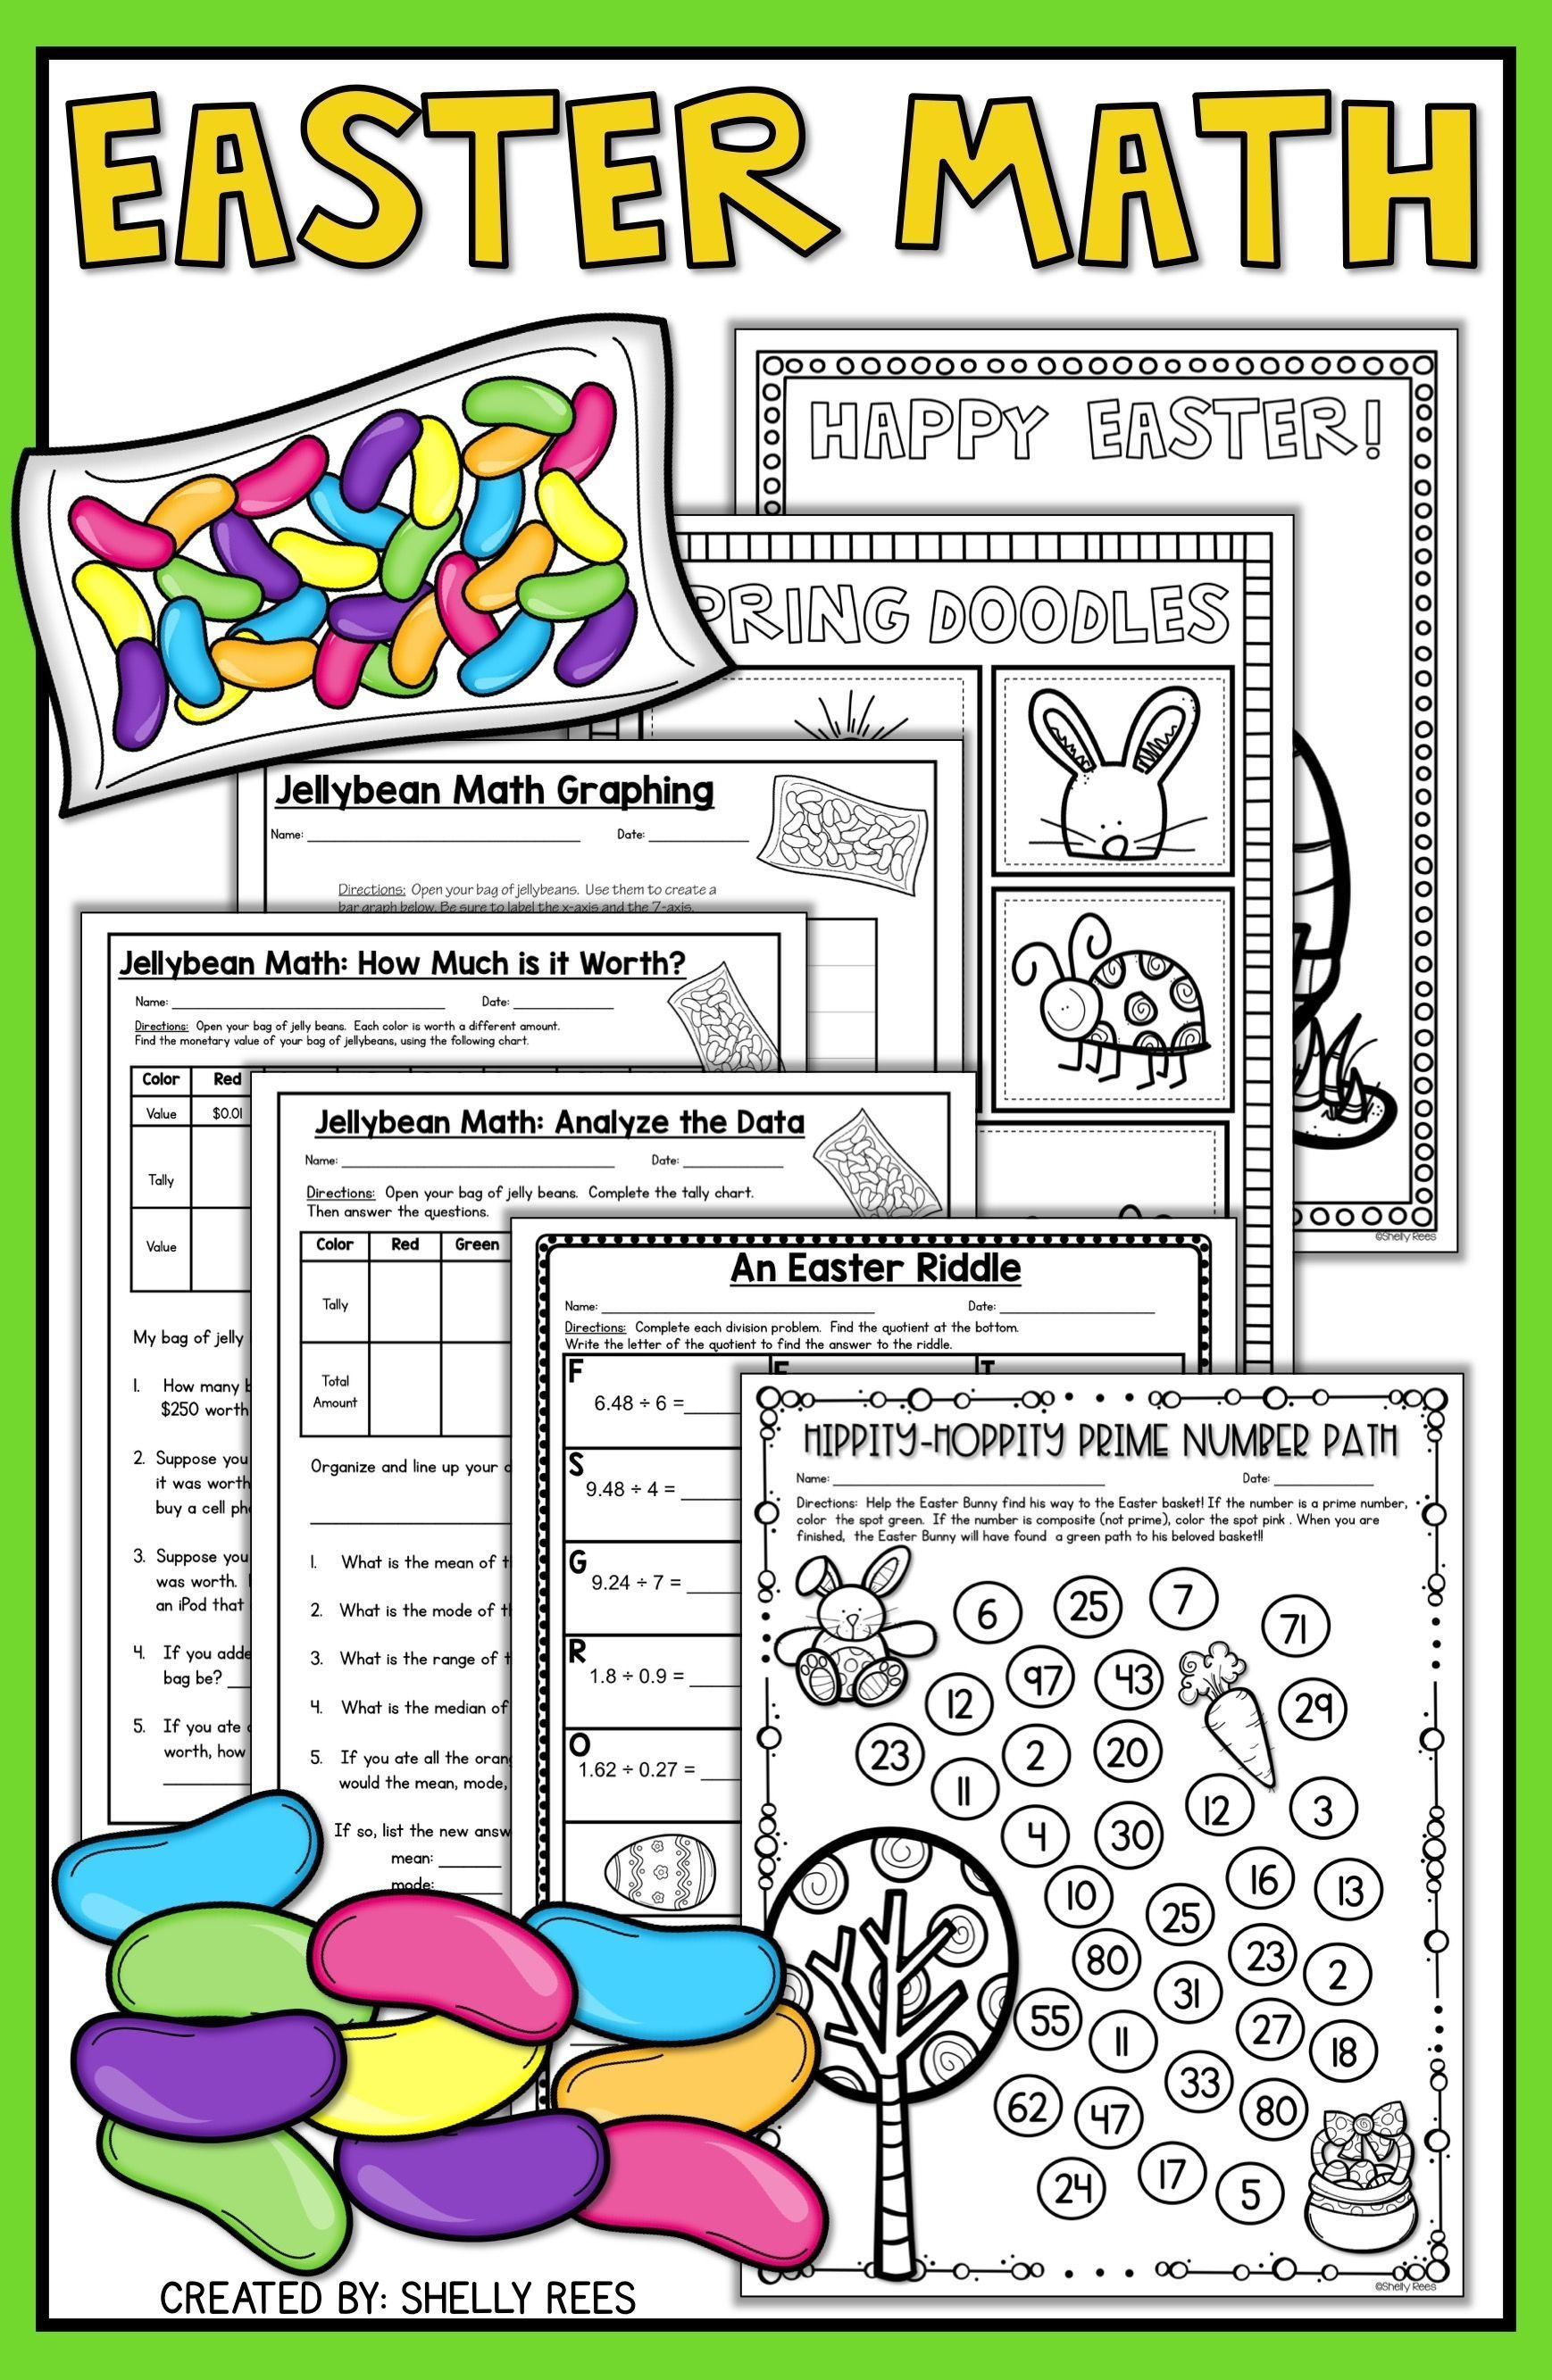 Easter Math Worksheets - Jellybean Math - Easter Activities | Big - Free Printable Easter Worksheets For 3Rd Grade